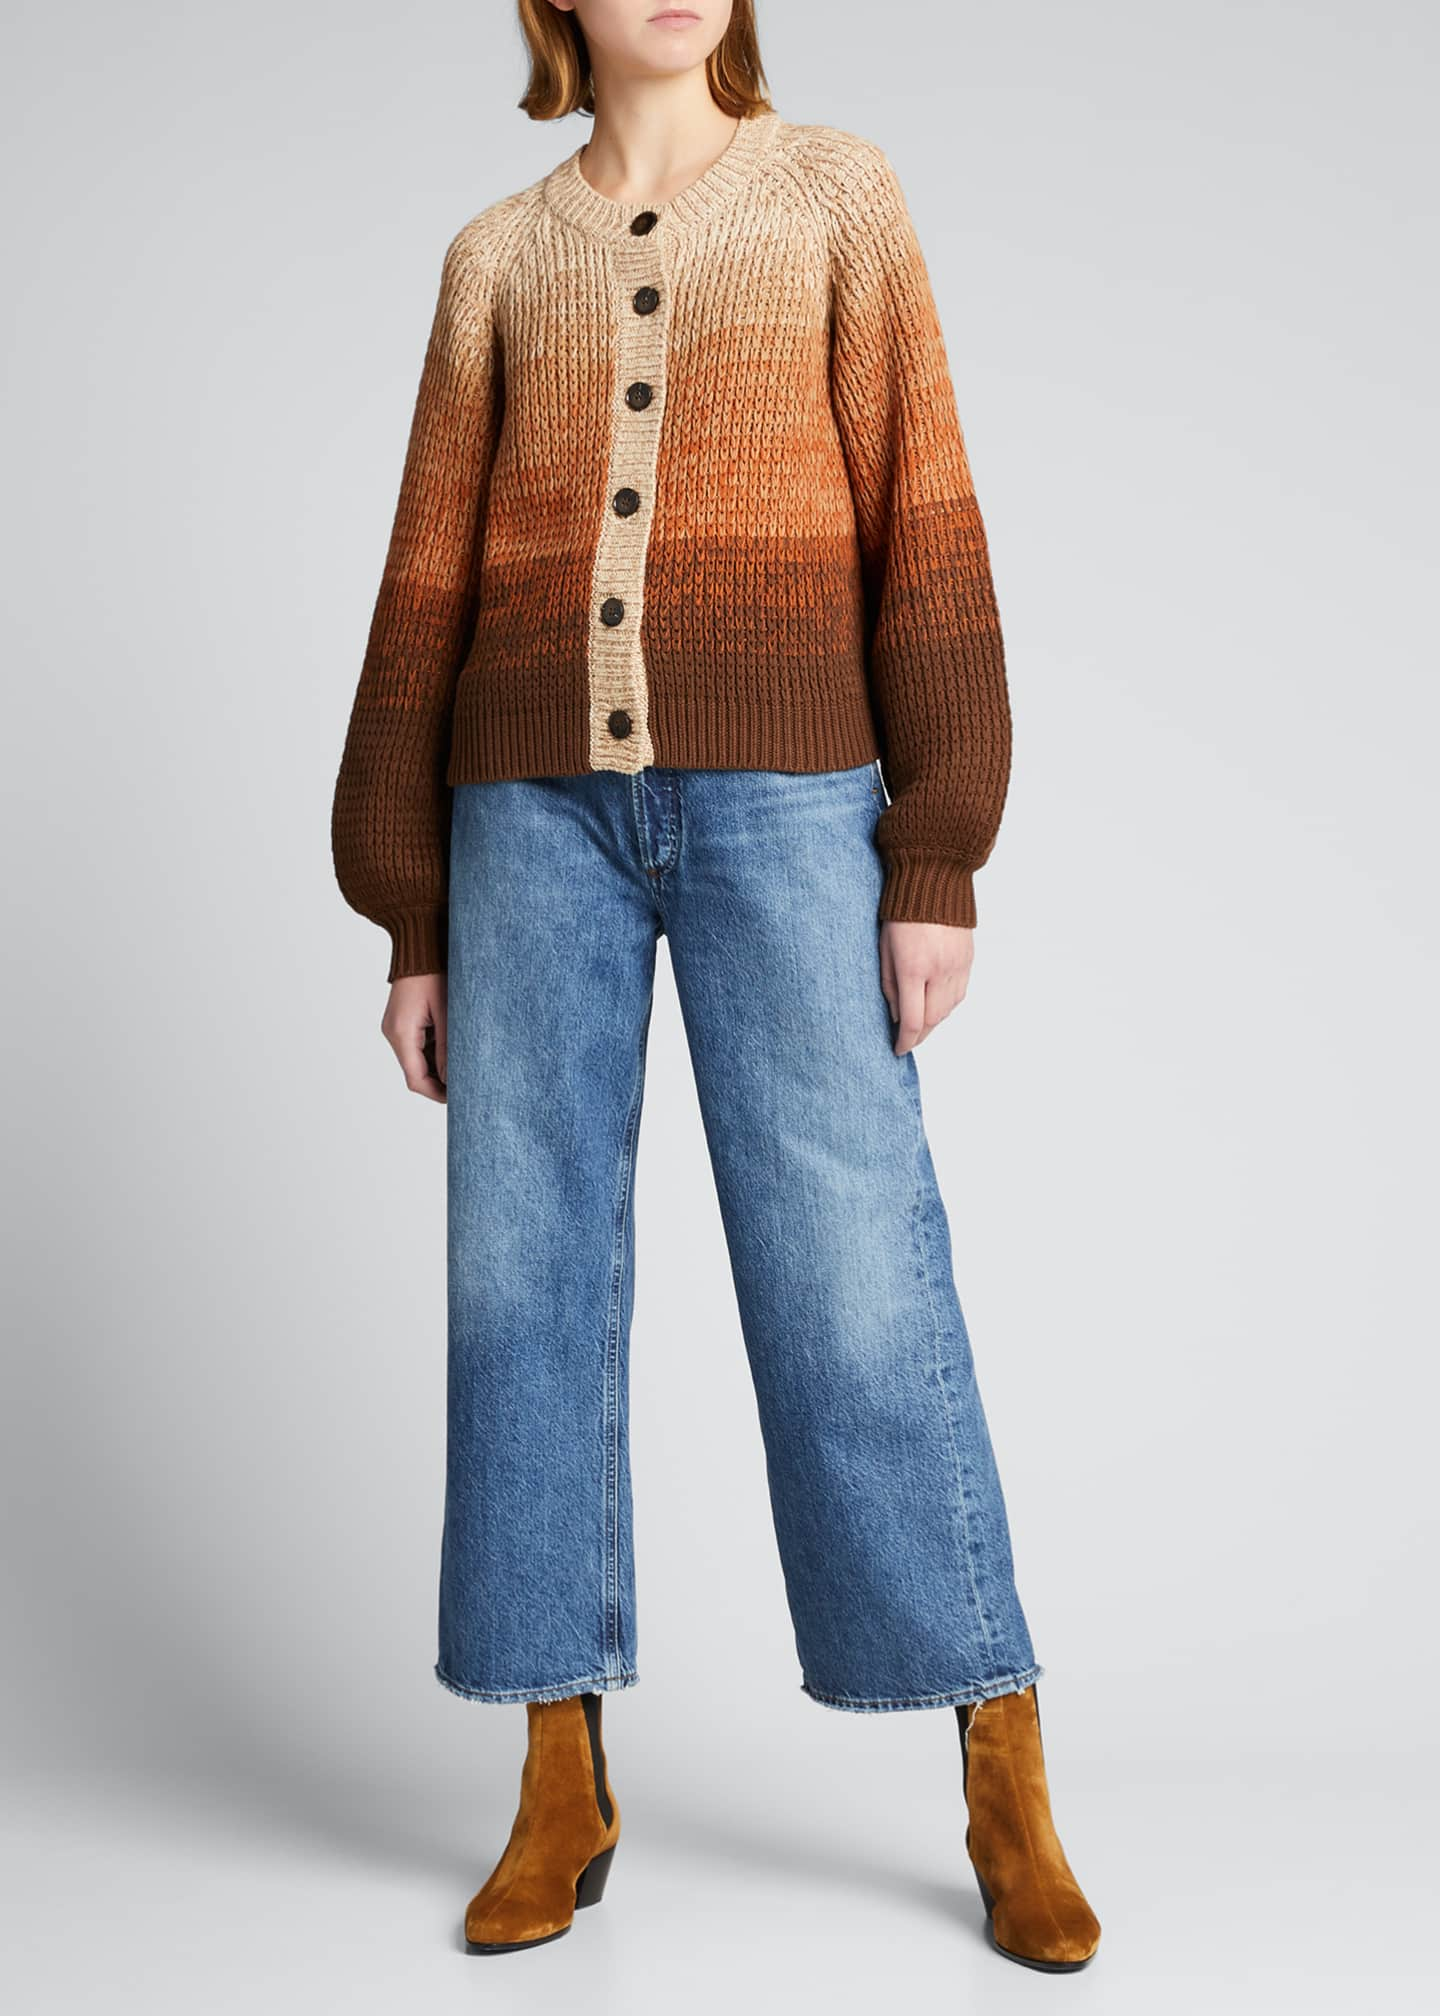 Image 1 of 5: The Dusk Cardigan